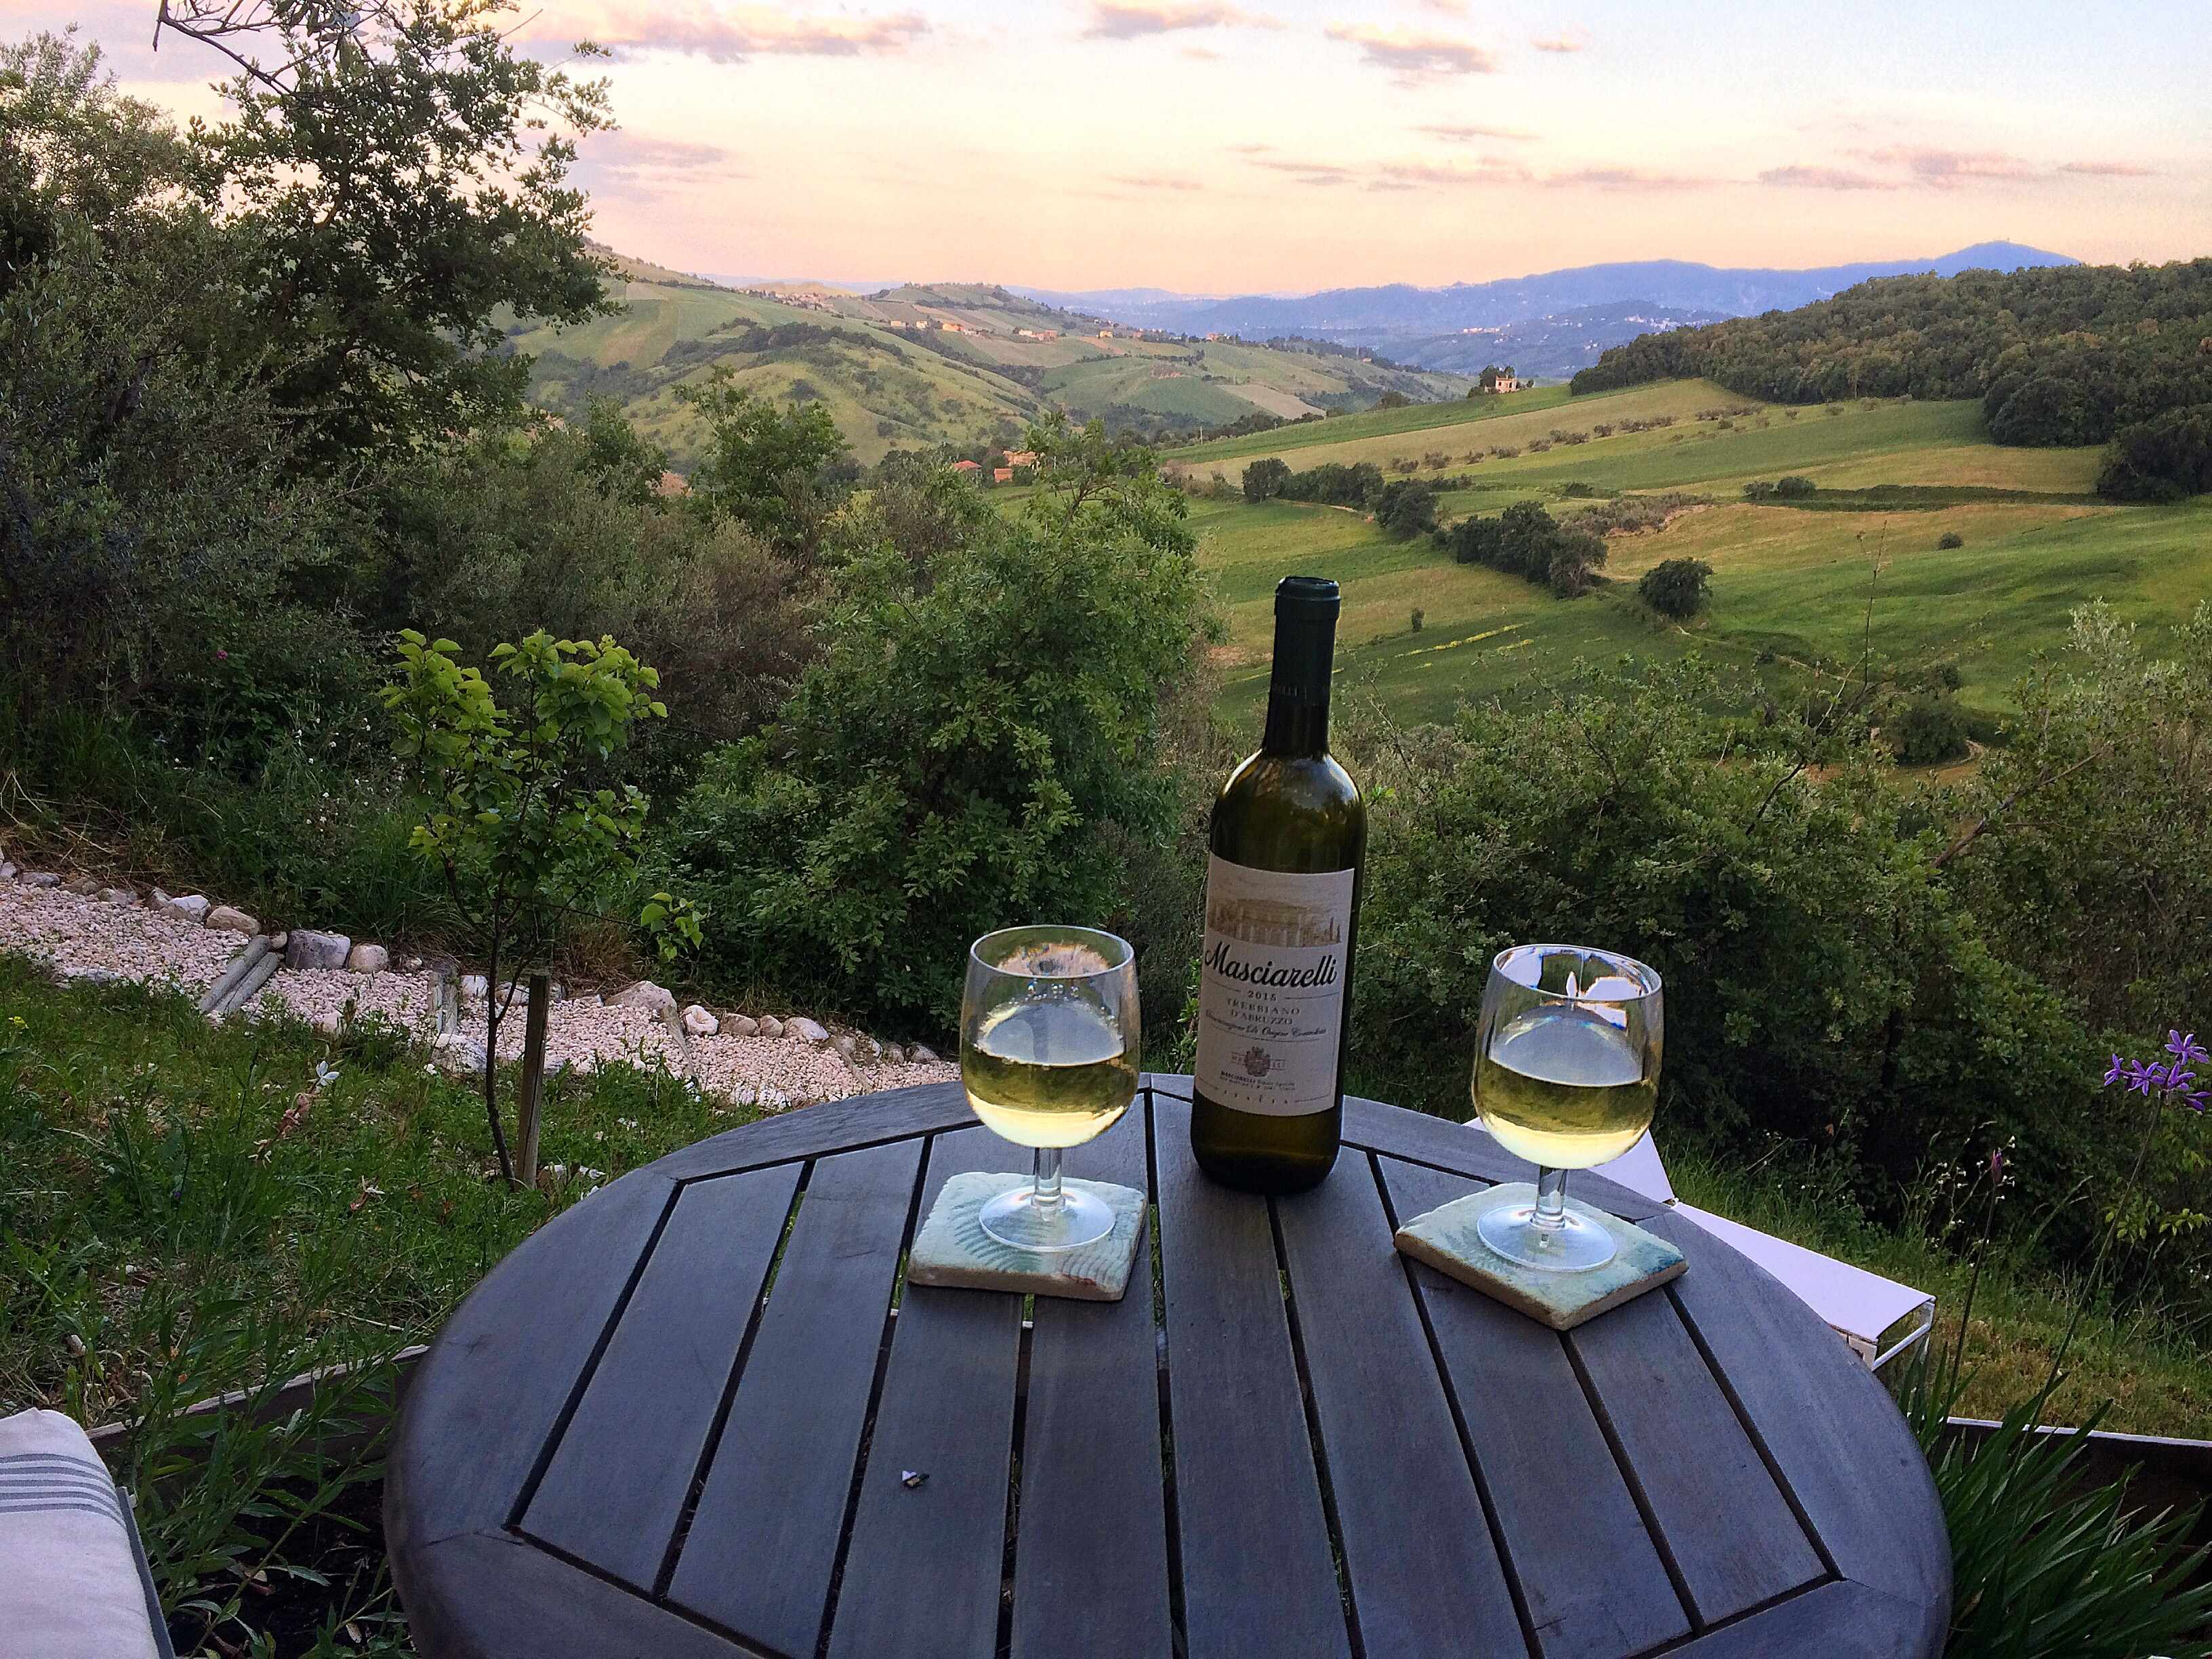 Bottle of wine and two glasses with the view of a valley and sunset